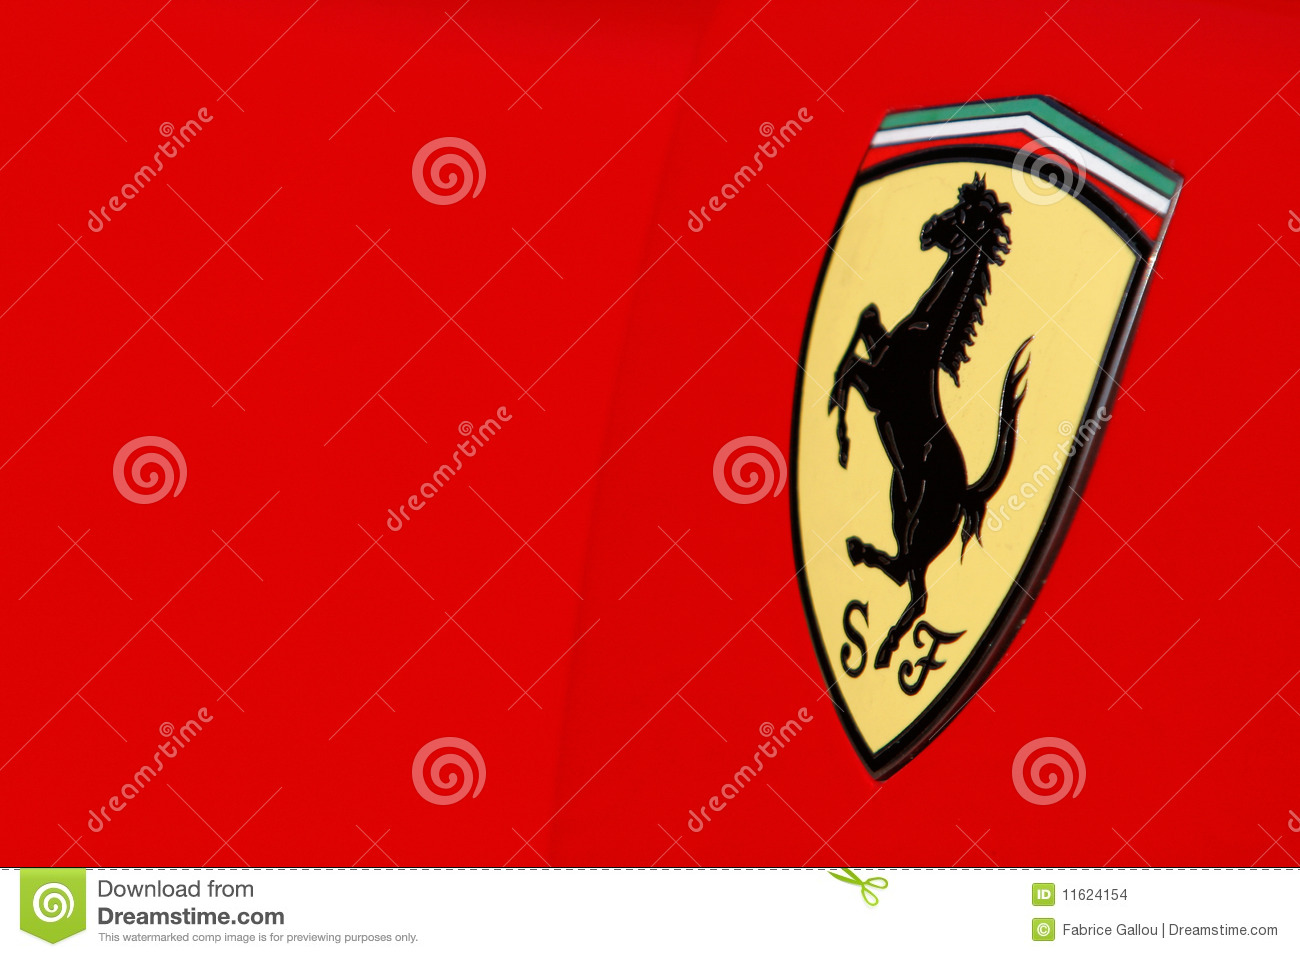 Ferrari logo stock photos download 1217 images ferrari logo on red sport car cavallino rampante badge stock images buycottarizona Choice Image